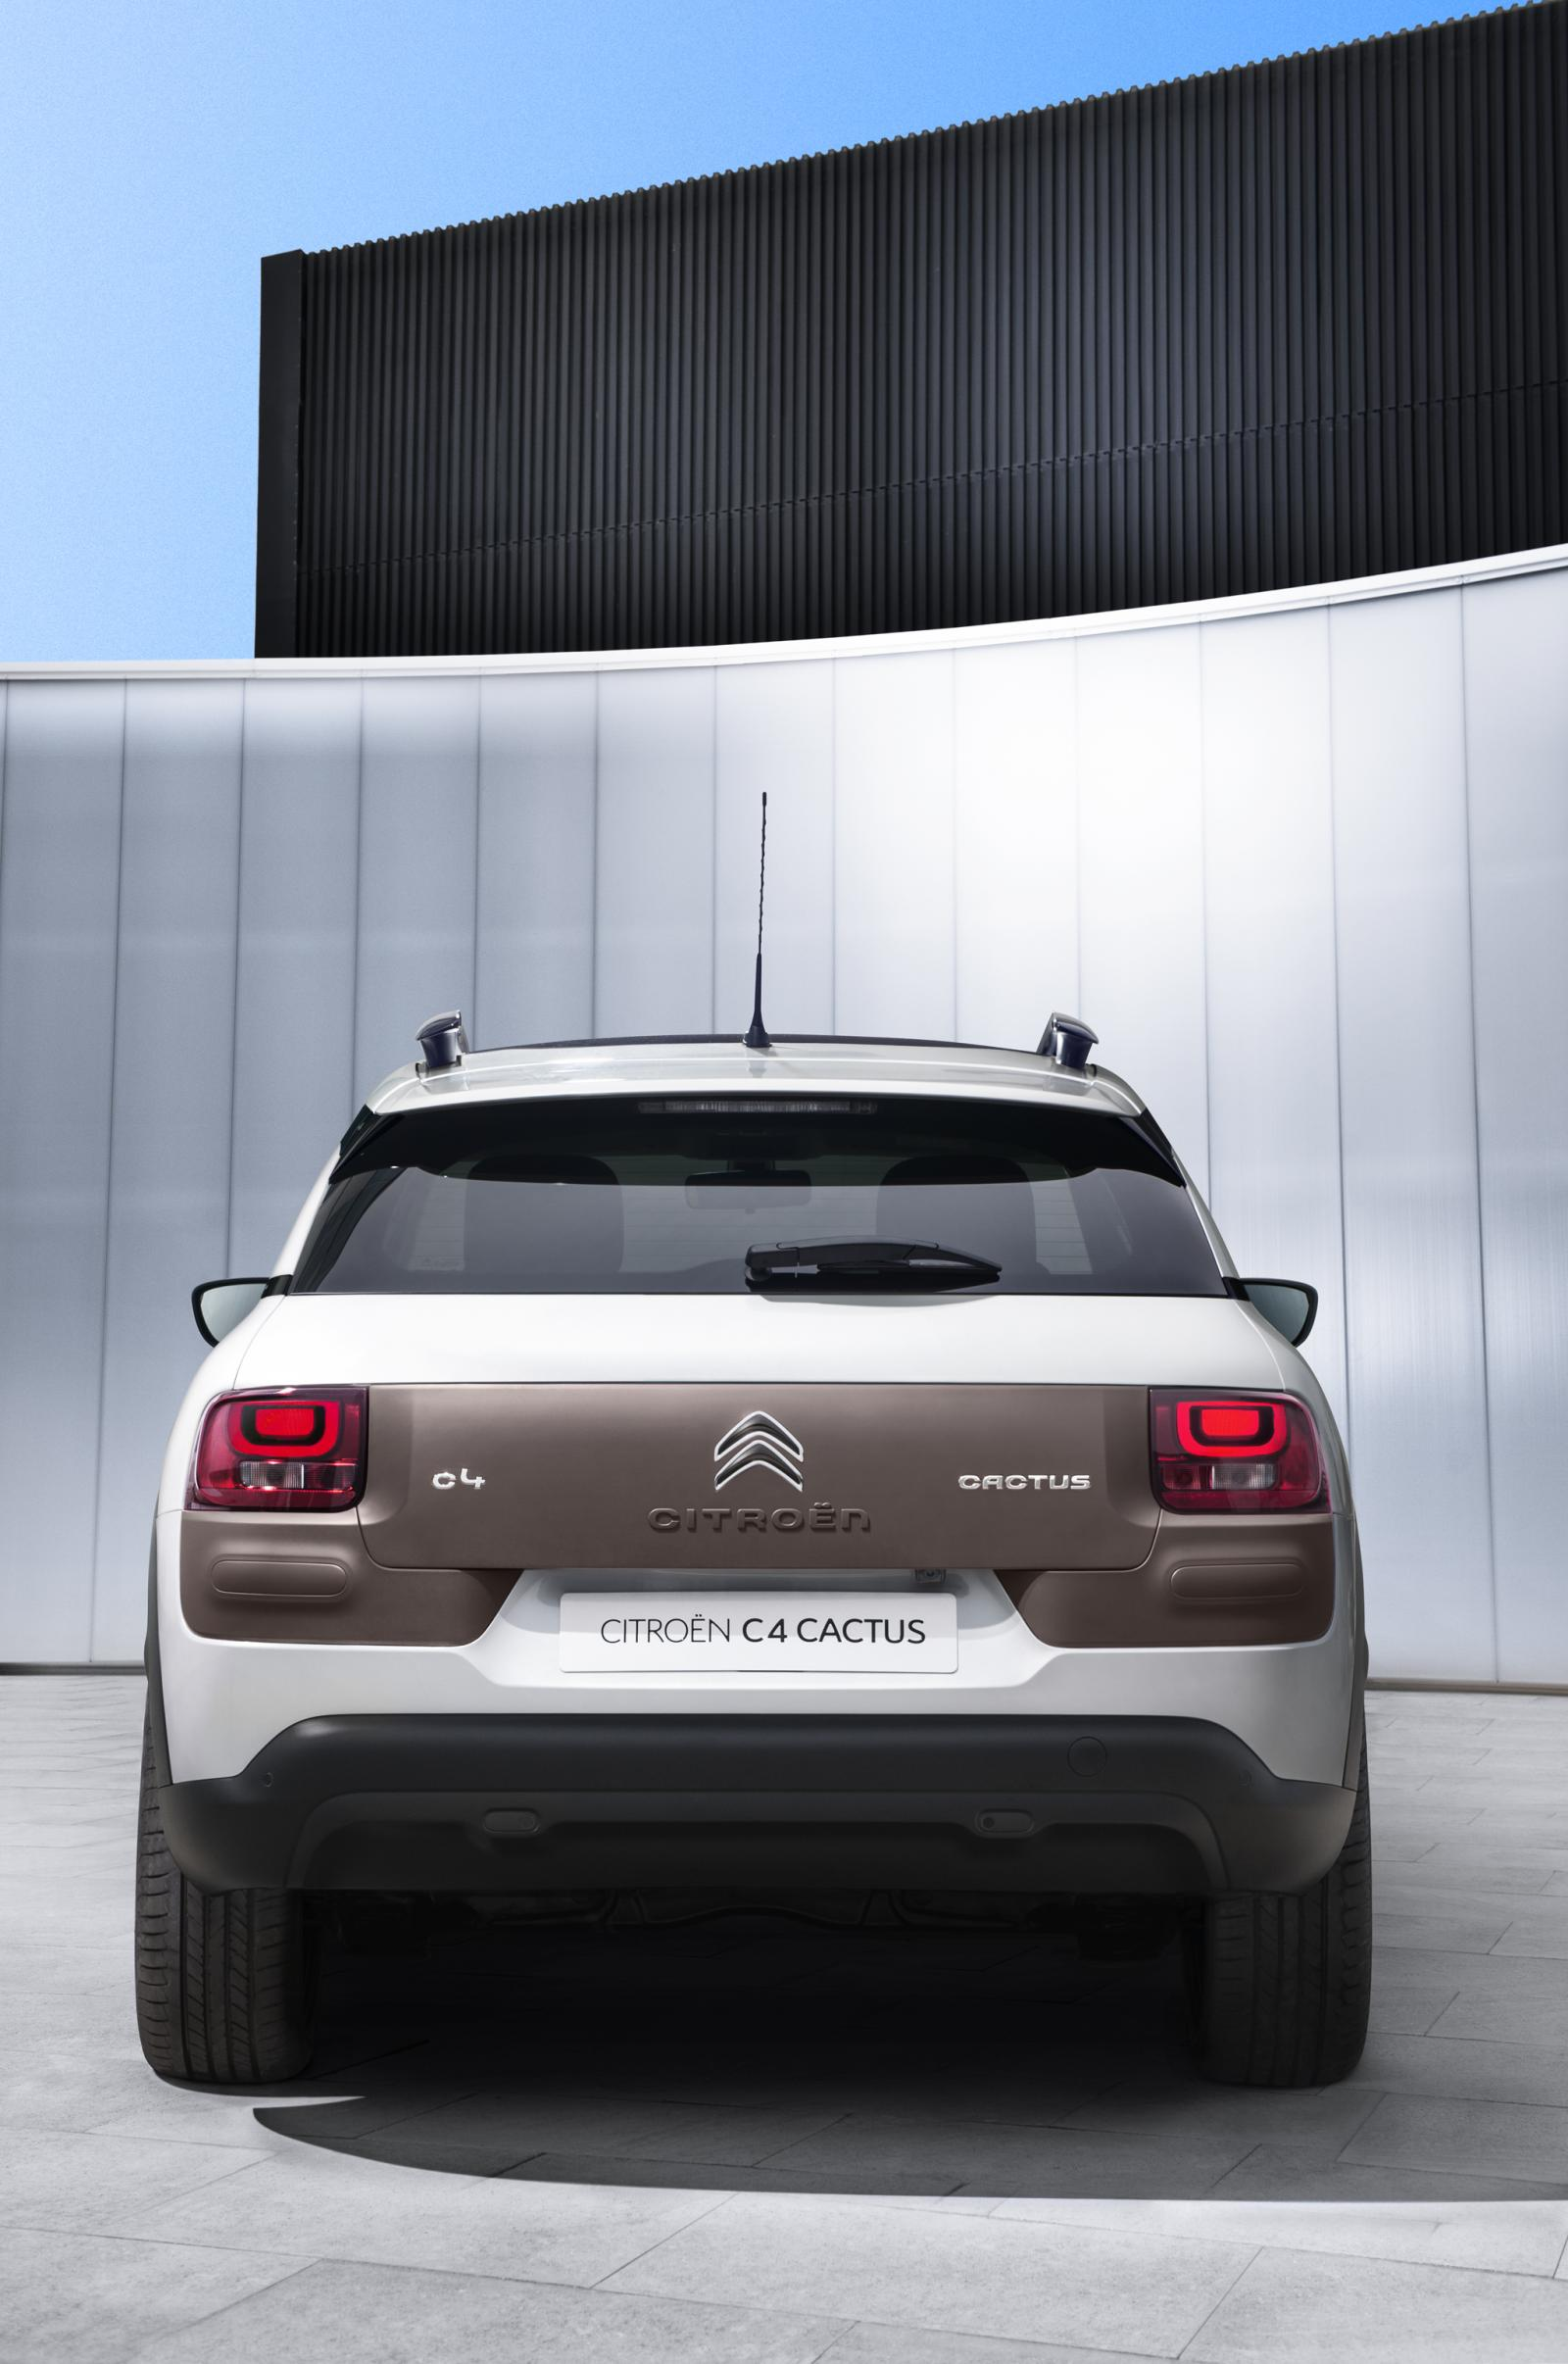 C4 Cactus Shine Edition 2014 rear view rear